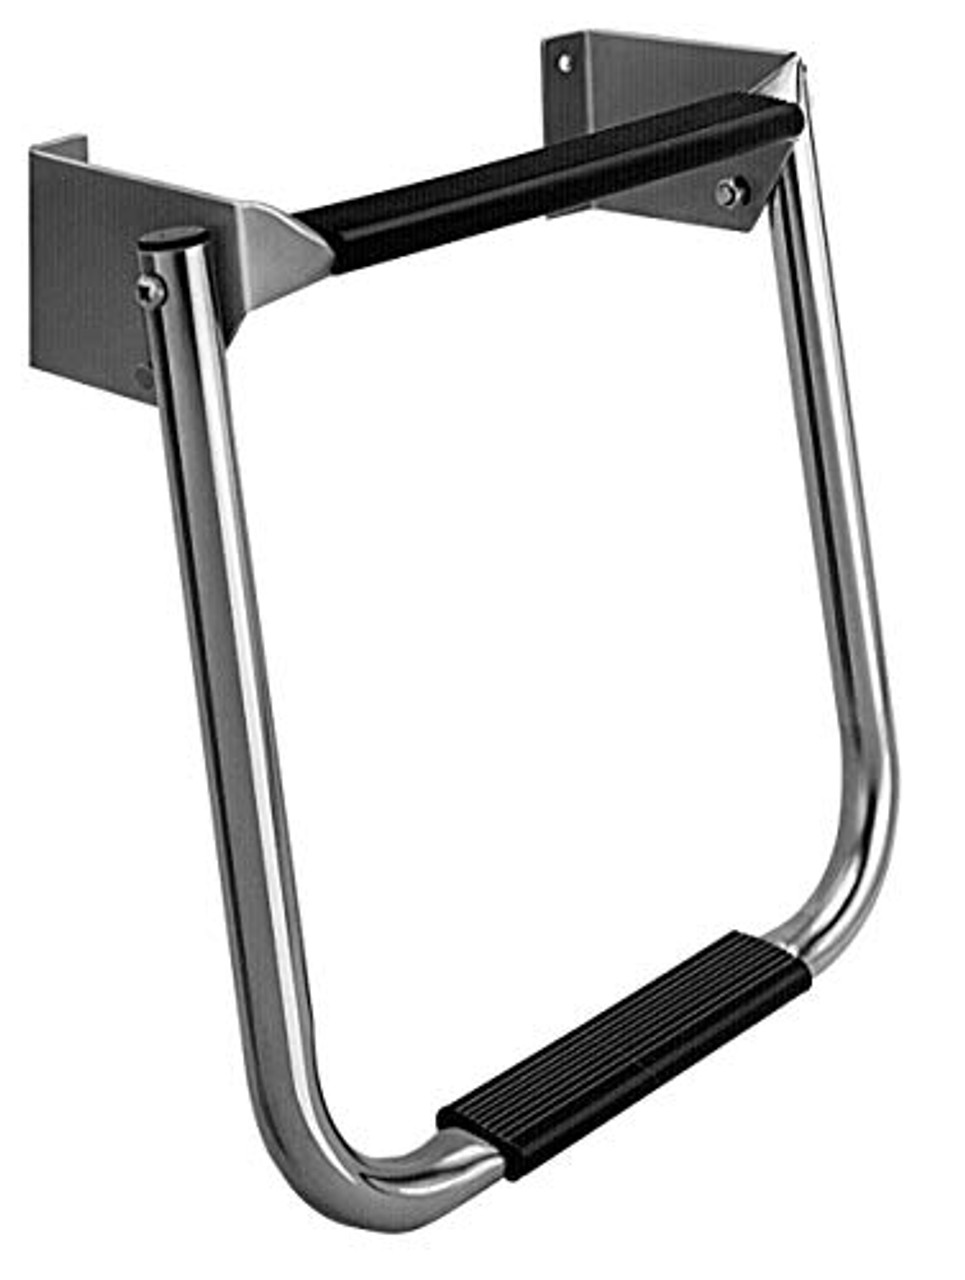 Garelick Compact Stainless Steel Transom Ladder